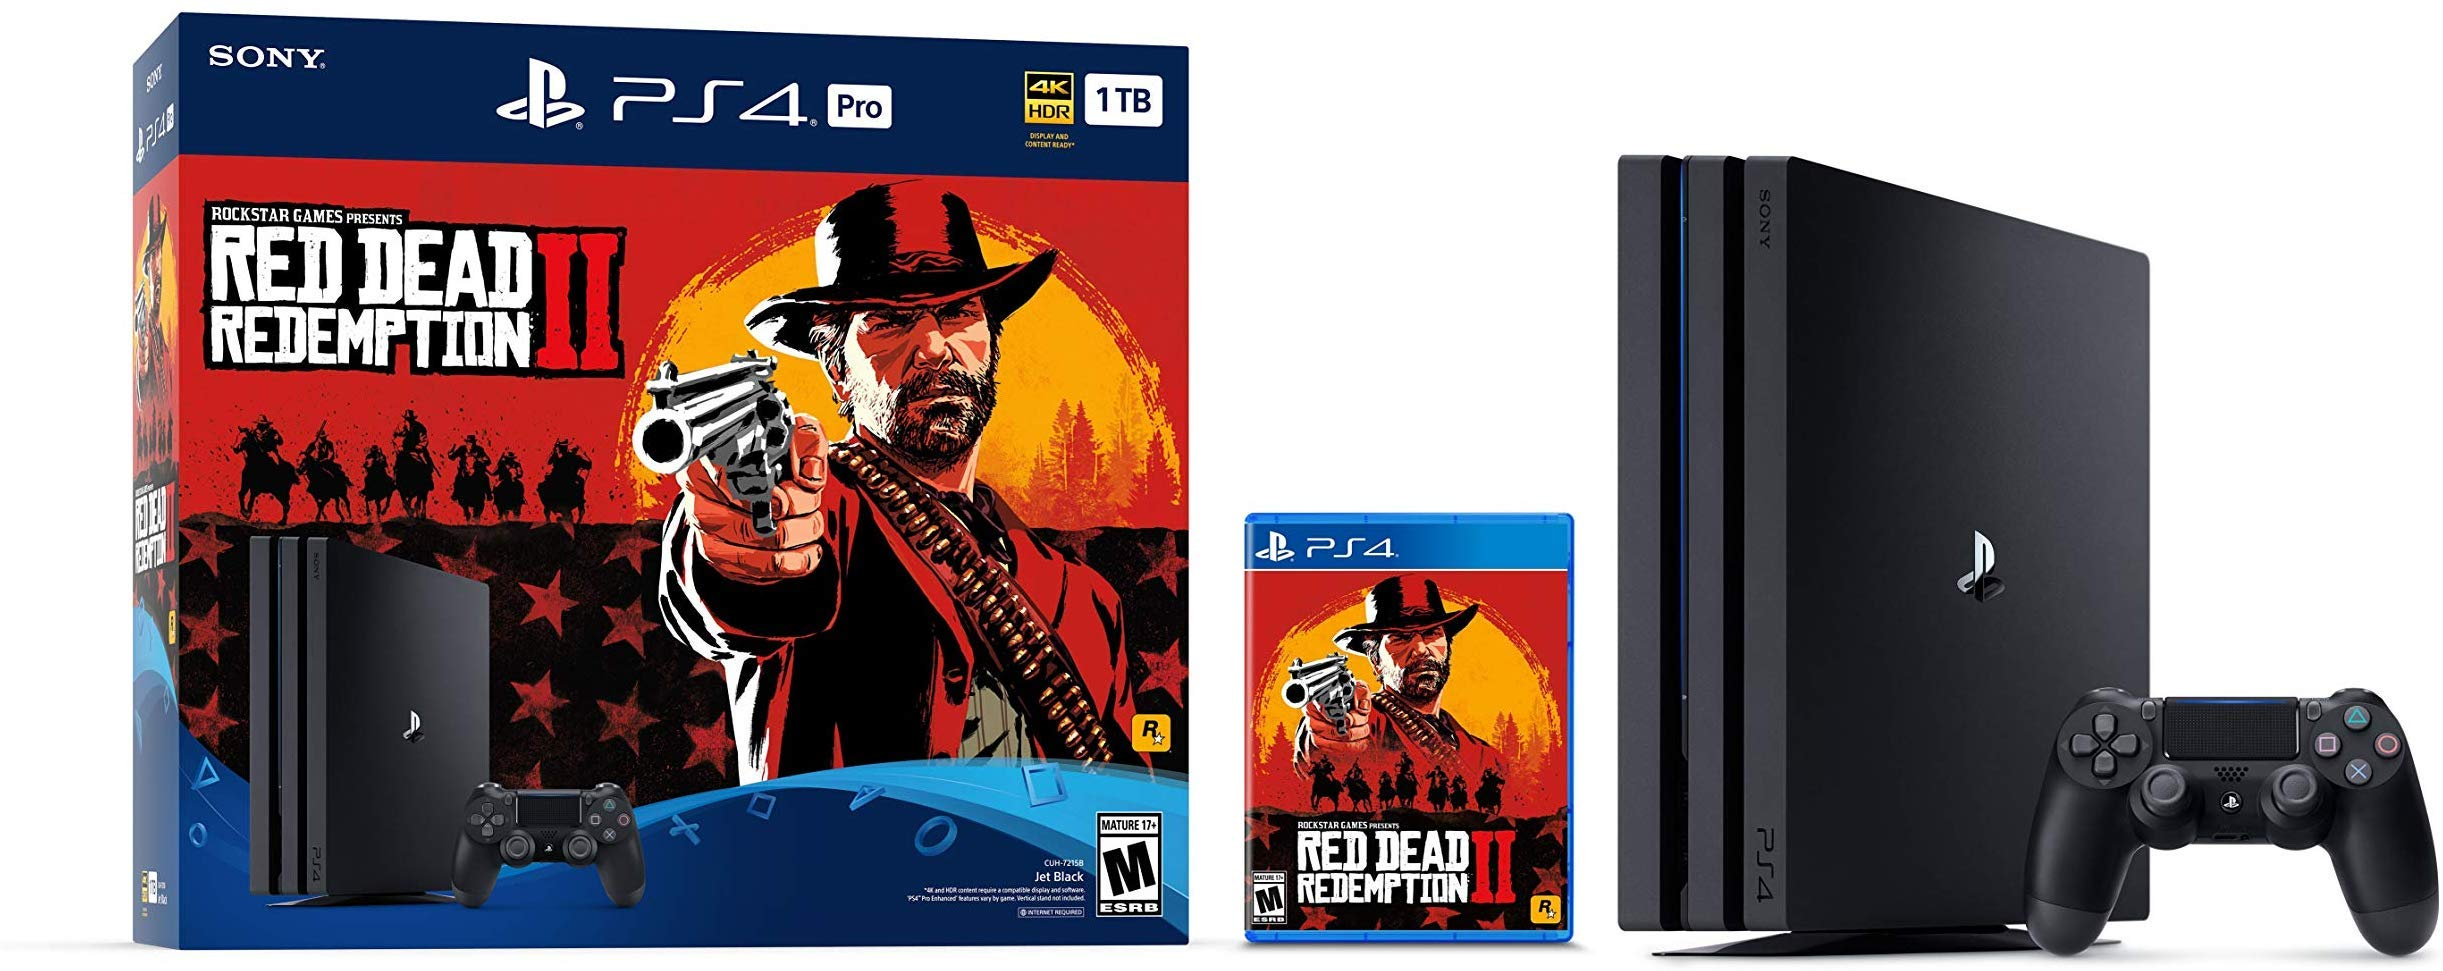 Playstation 4 Pro 1TB/2TB Console Jet Black 4K HDR Gaming Console Red Dead Redemption 2, Customize 1TB/2TB HDD/SSHD, 1TB HDD